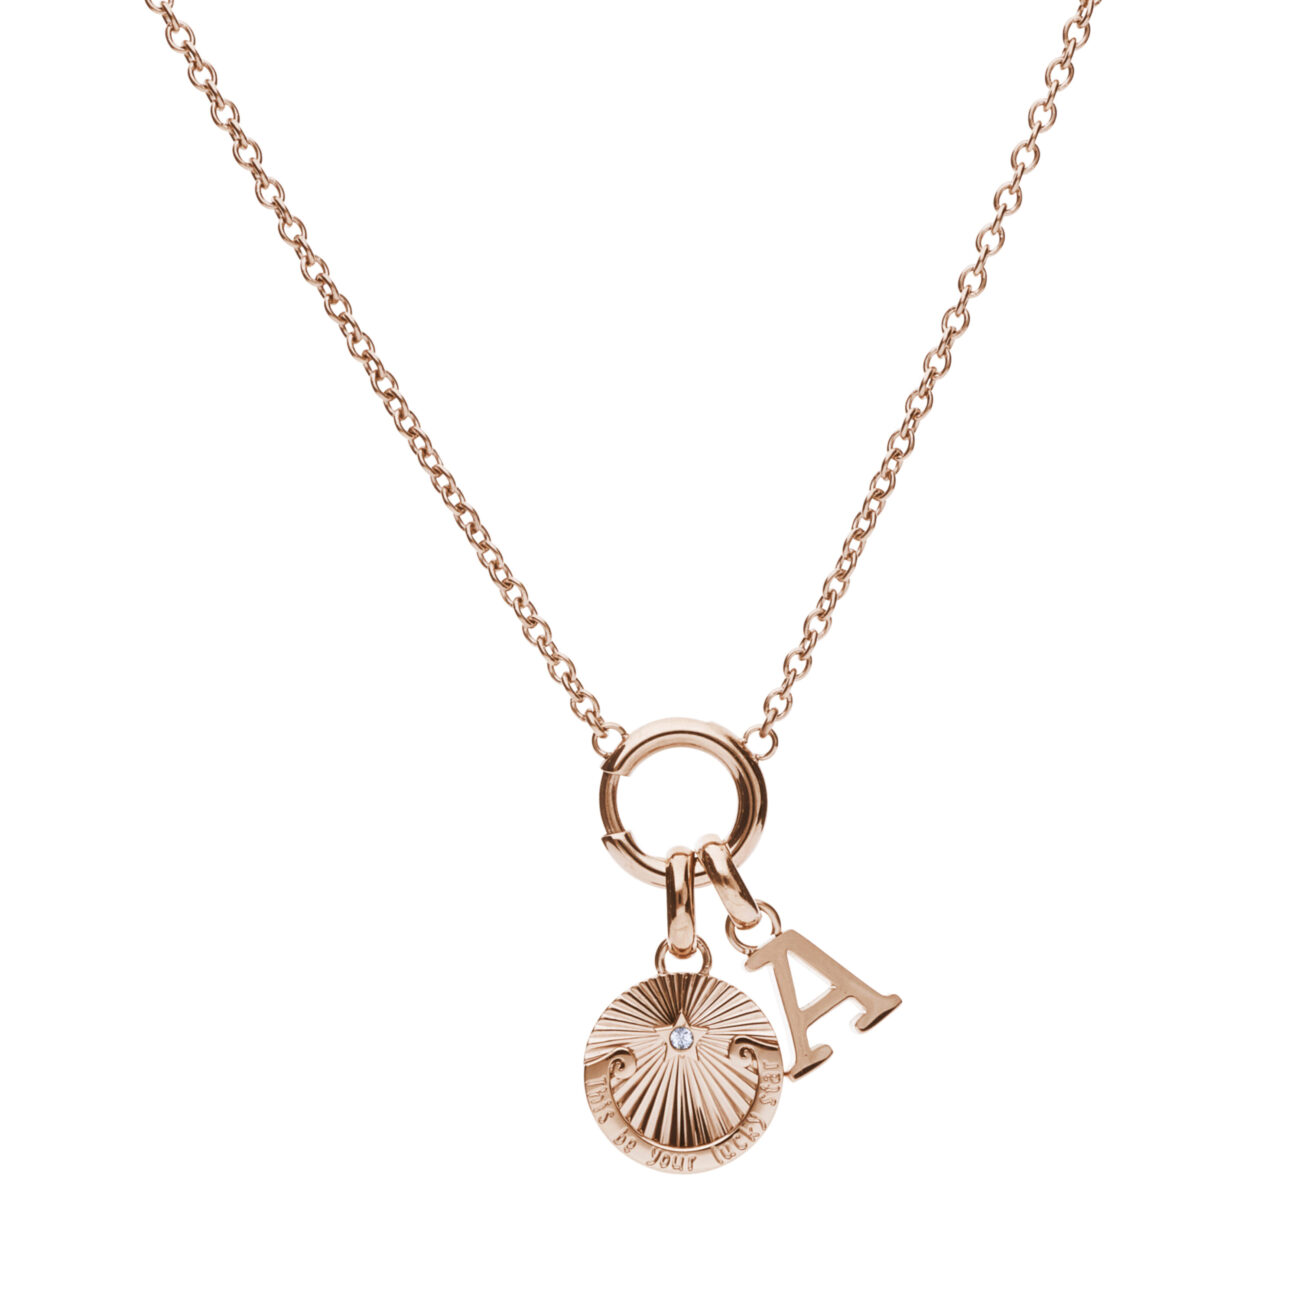 """316L stainless steel and rose gold pvd composable necklace, with """"This be your lucky star"""" engraving beads and gold pvd A letter beads."""